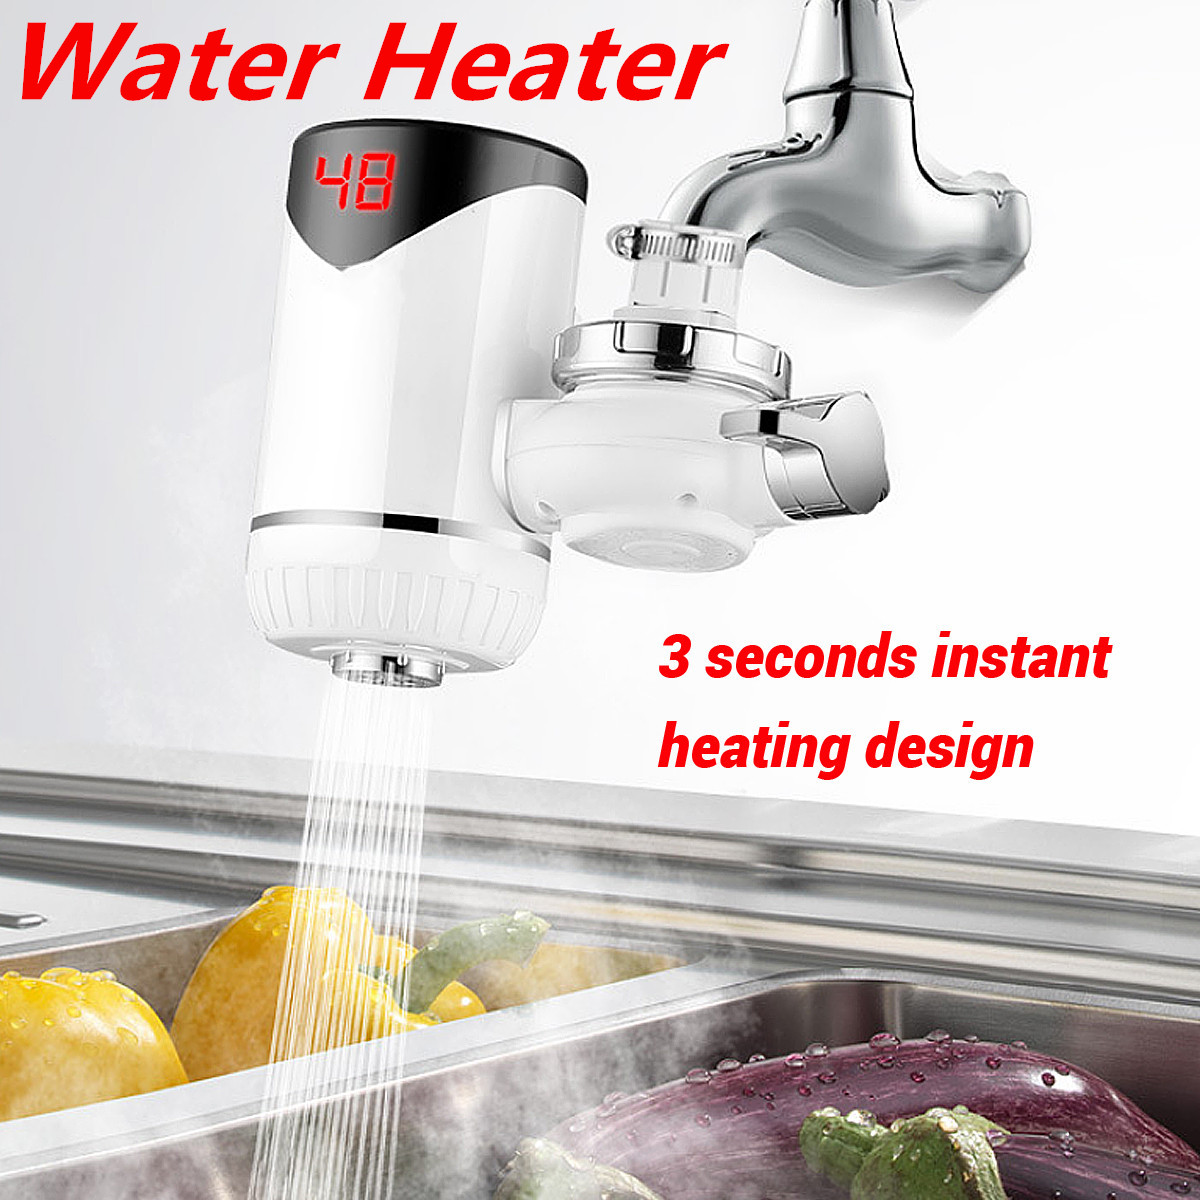 3KW 220V Instant Water Heater Crane Temperature Display Water Heater Electric Hot Water Tankless Heating Bathroom Kitchen Faucet